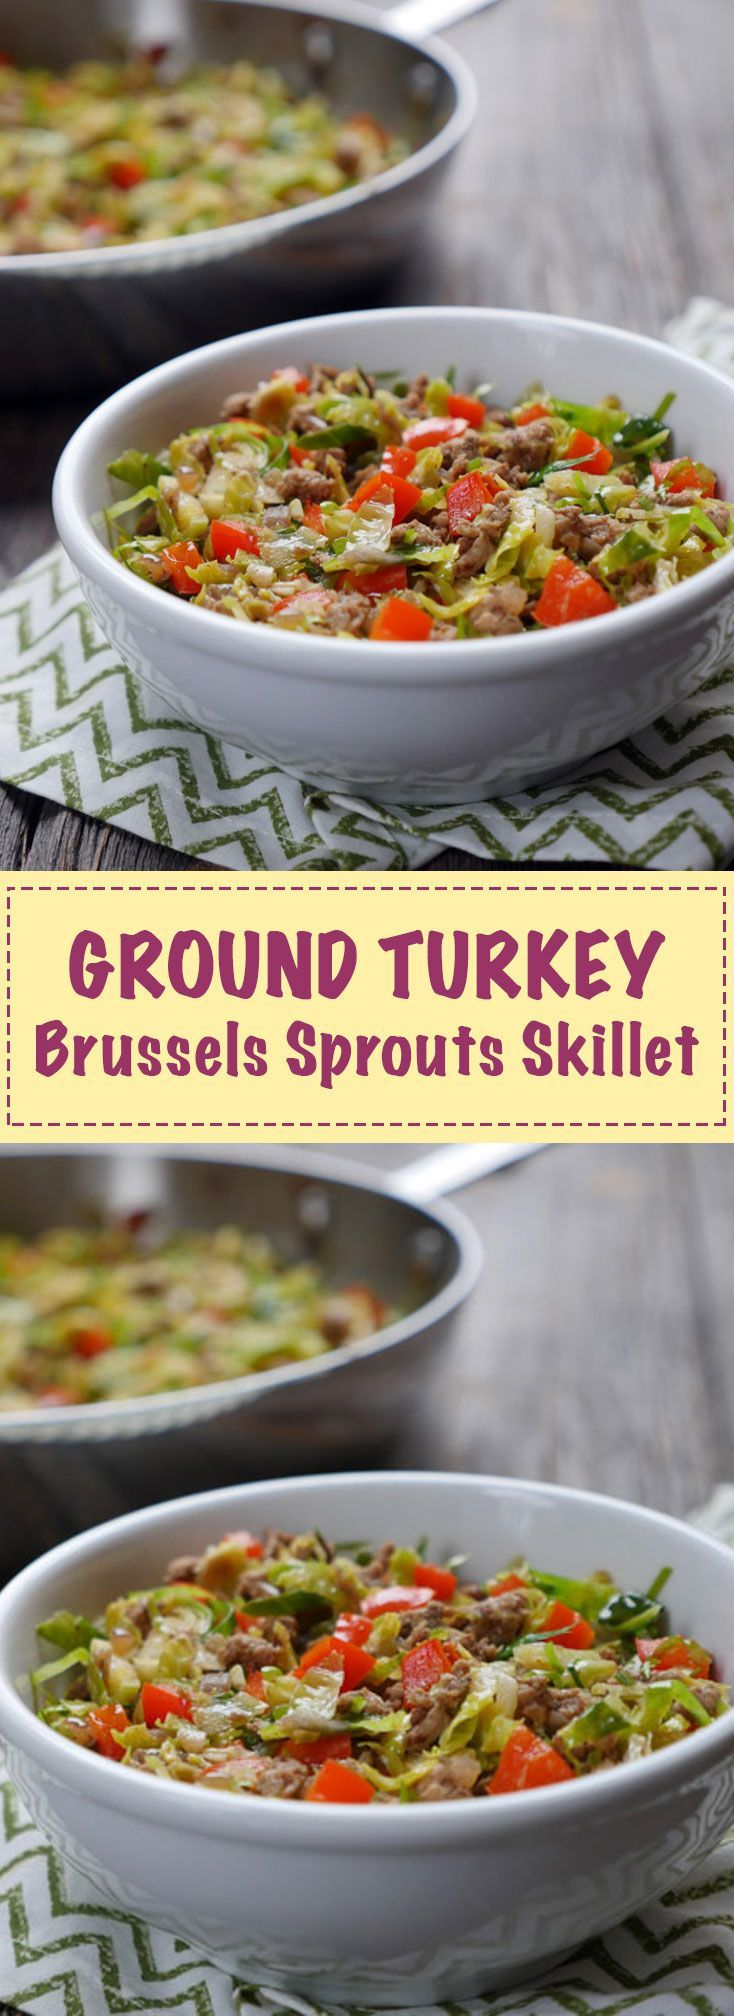 Ground Turkey Brussels Sprouts Skillet by Ashley of http://MyHeartBeets.com